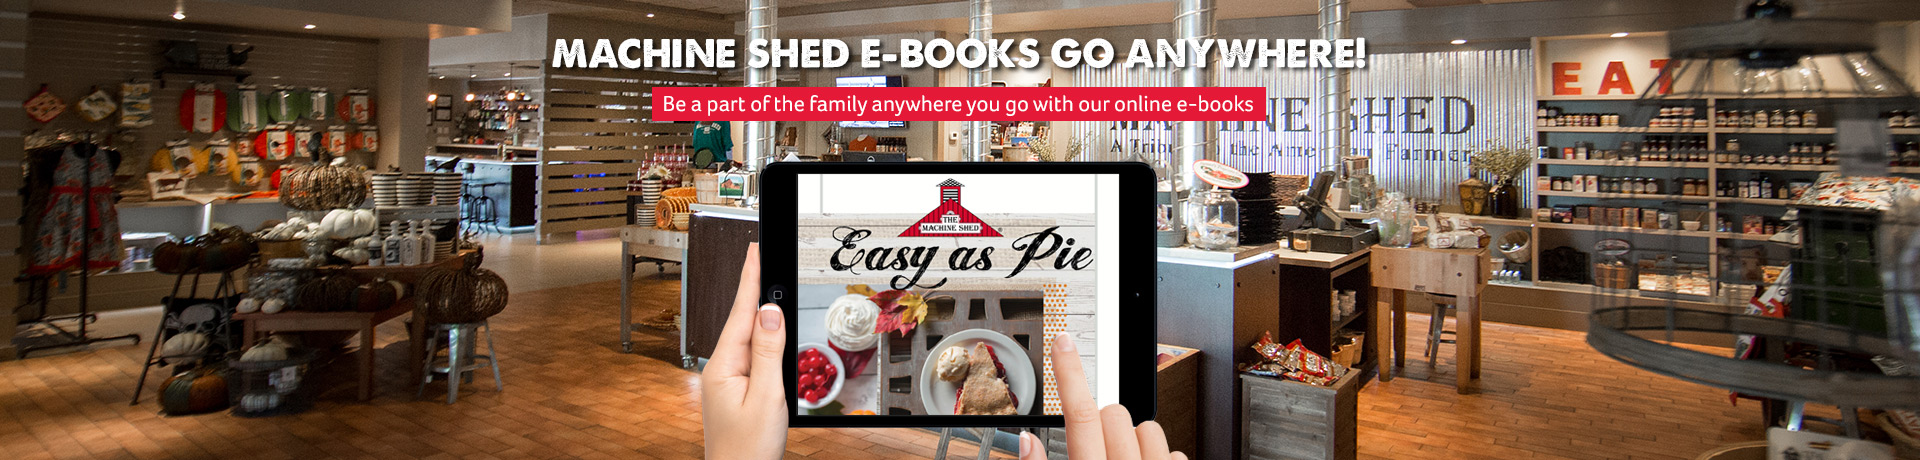 Machine Shed E-Books